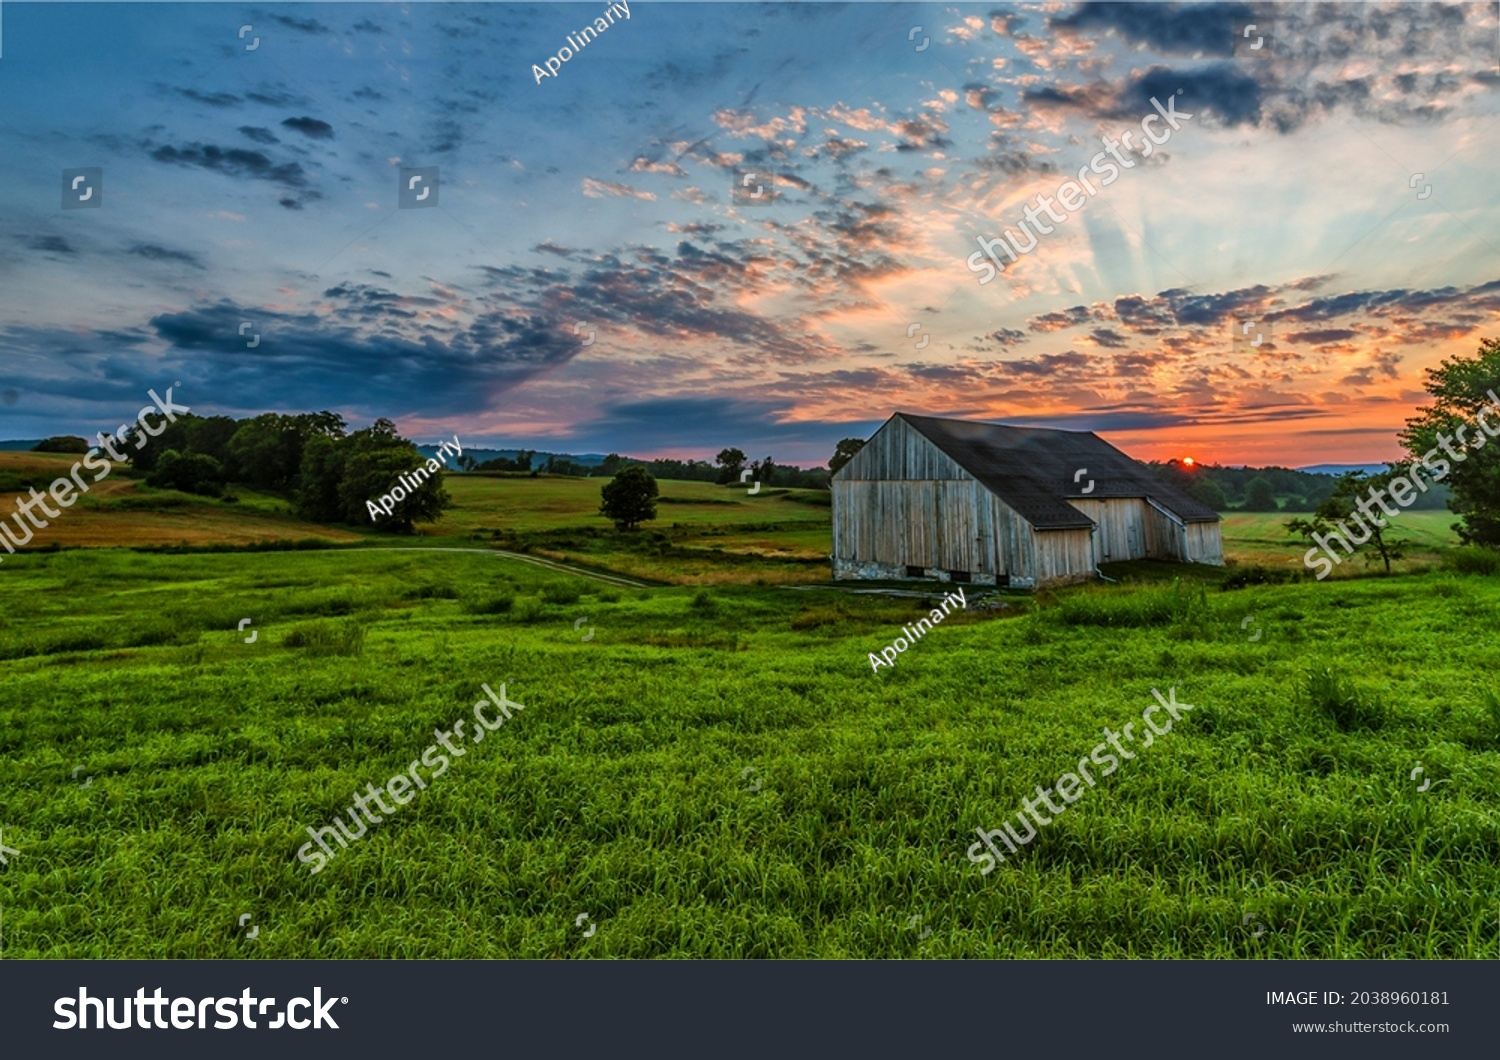 Morning dawn over a farm in a field. Valley farm at dawn. Sunrise over farm field. Early morning farm field at dawn #2038960181